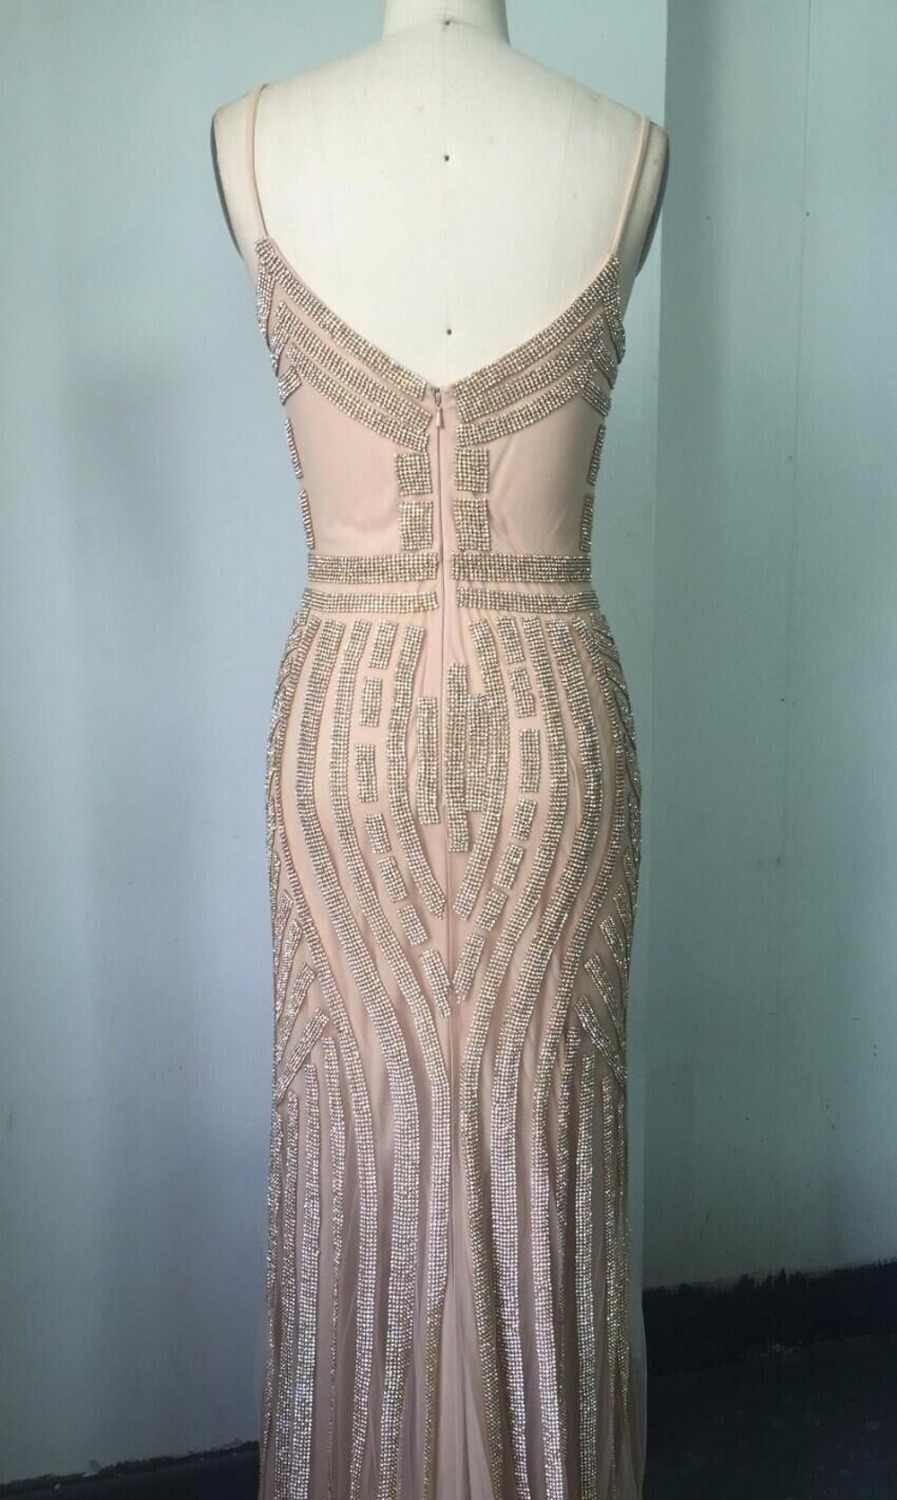 ... In Stock Mermaid Evening Dresses Crystal Beads Formal Party Gowns with Spaghetti  Strap Long robe de 8e52250c850f